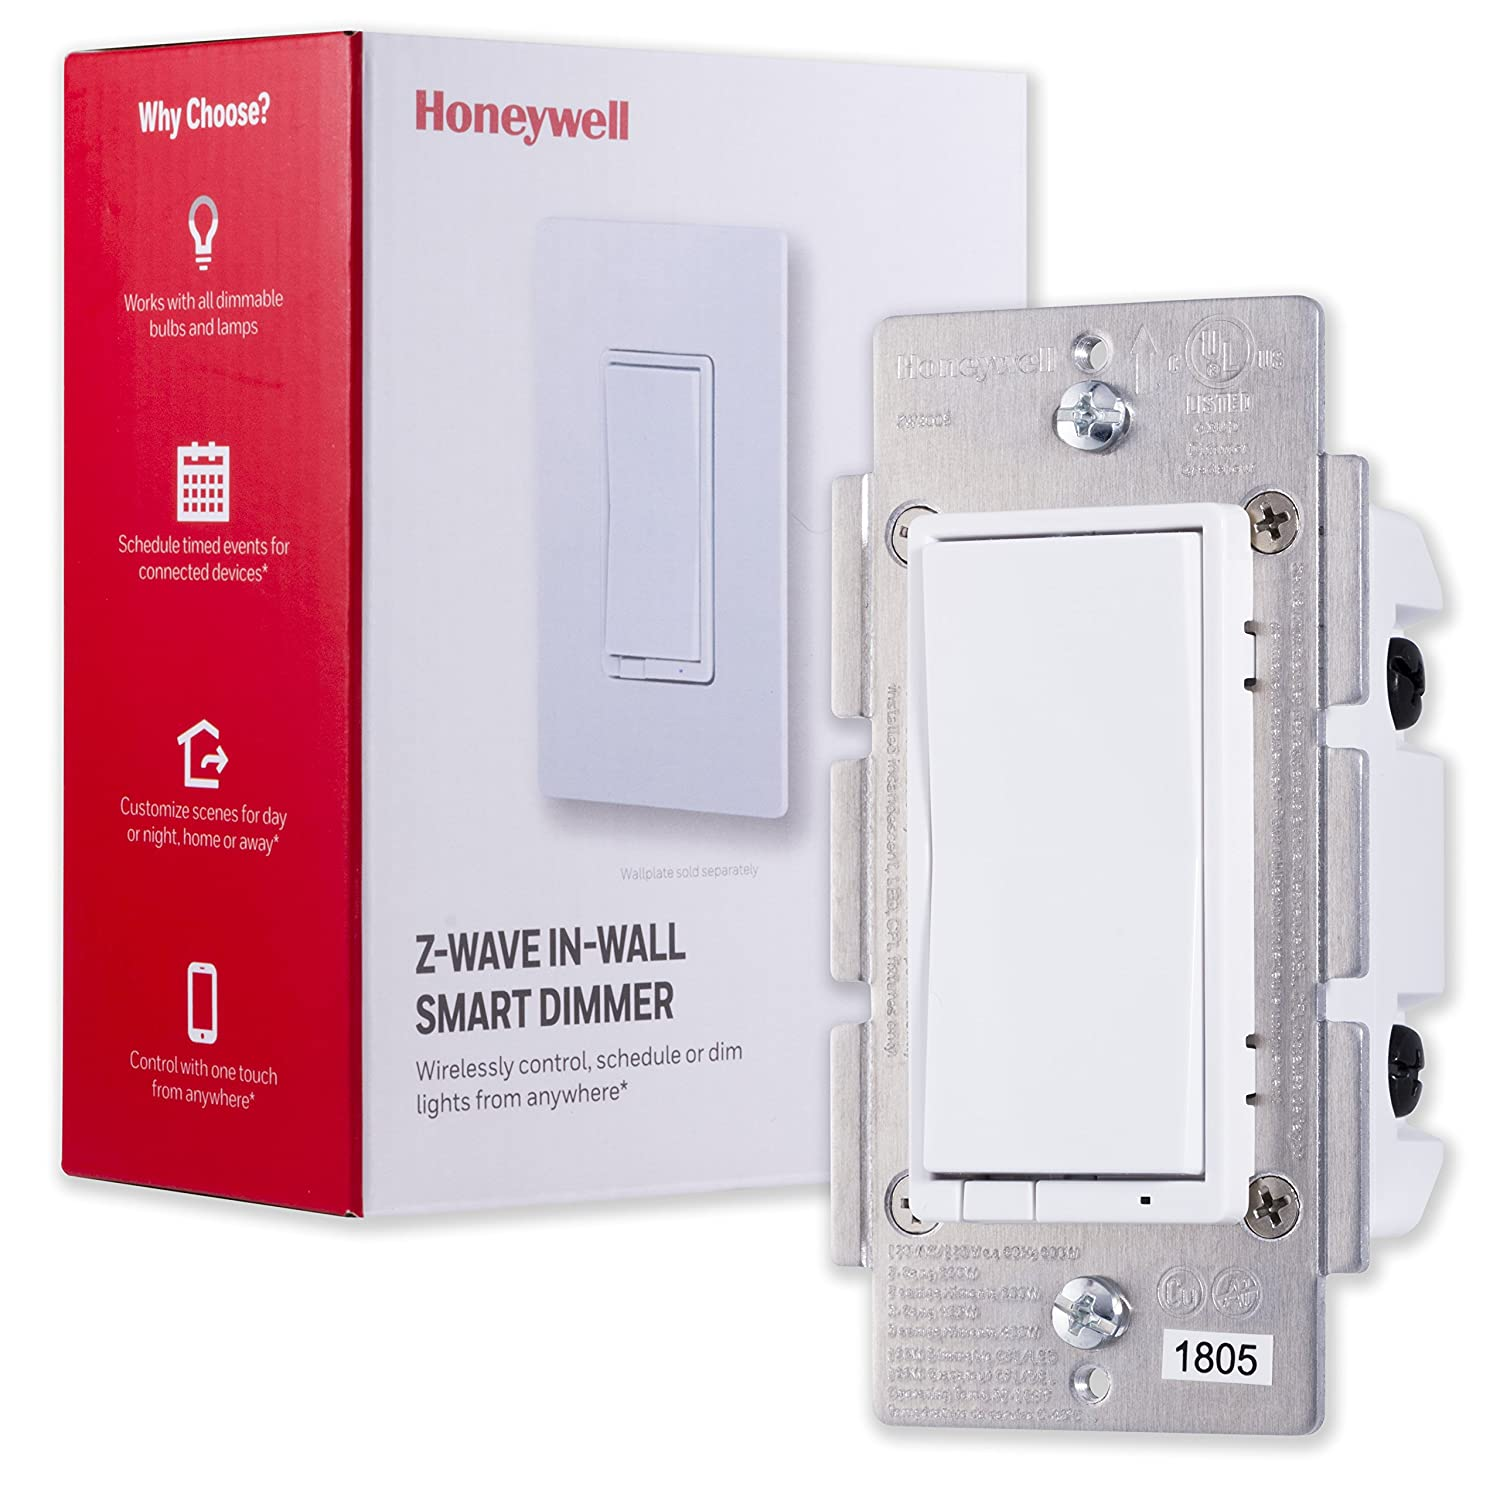 Honeywell Z-Wave Plus Smart Light Dimmer Switch, In-Wall Paddle, Interchangeable White & Almond |Built-In Repeater & Range Extender | ZWave Hub Required - SmartThings, Wink, Alexa Compatible, 39351